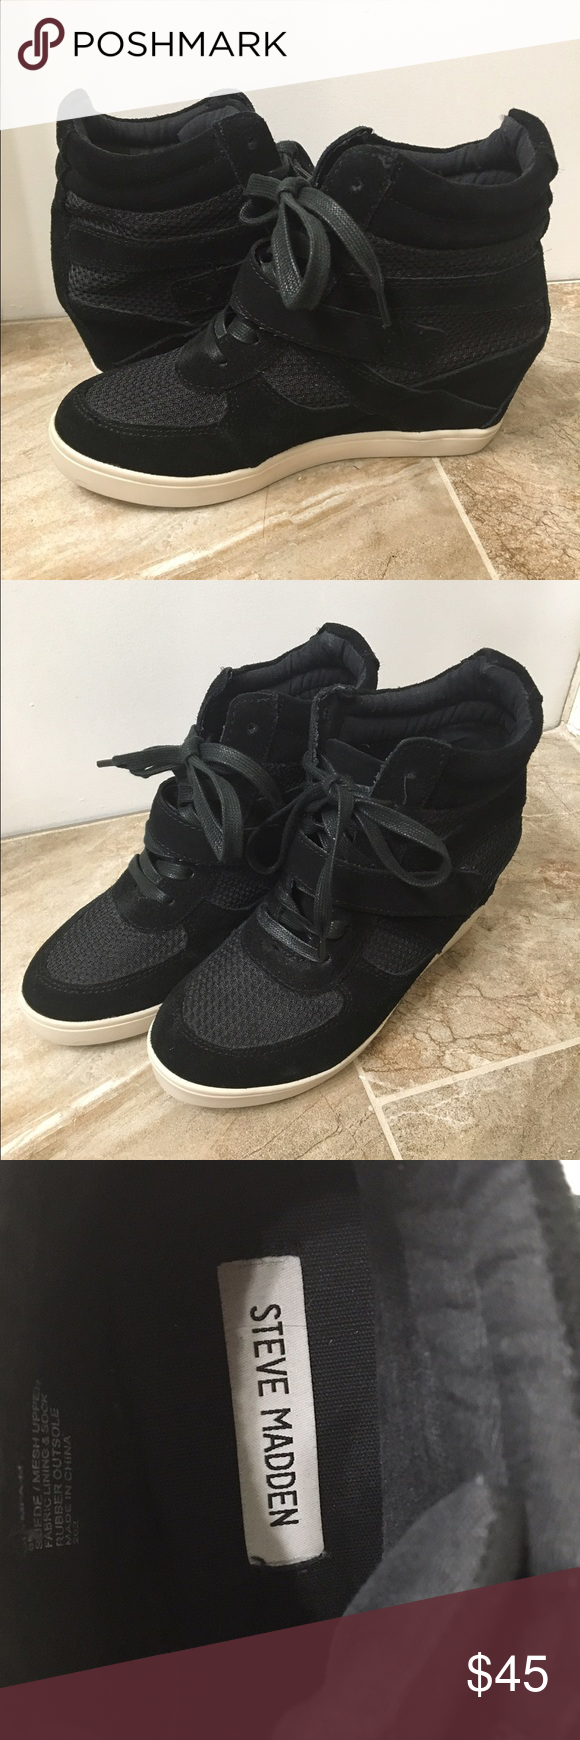 FLASH SALESTEVE MADDEN Wedge Sneakers Steve Madden Olympiaa Wedge Sneakers Never worn outside! Perfect condition! Steve Madden Shoes Sneakers